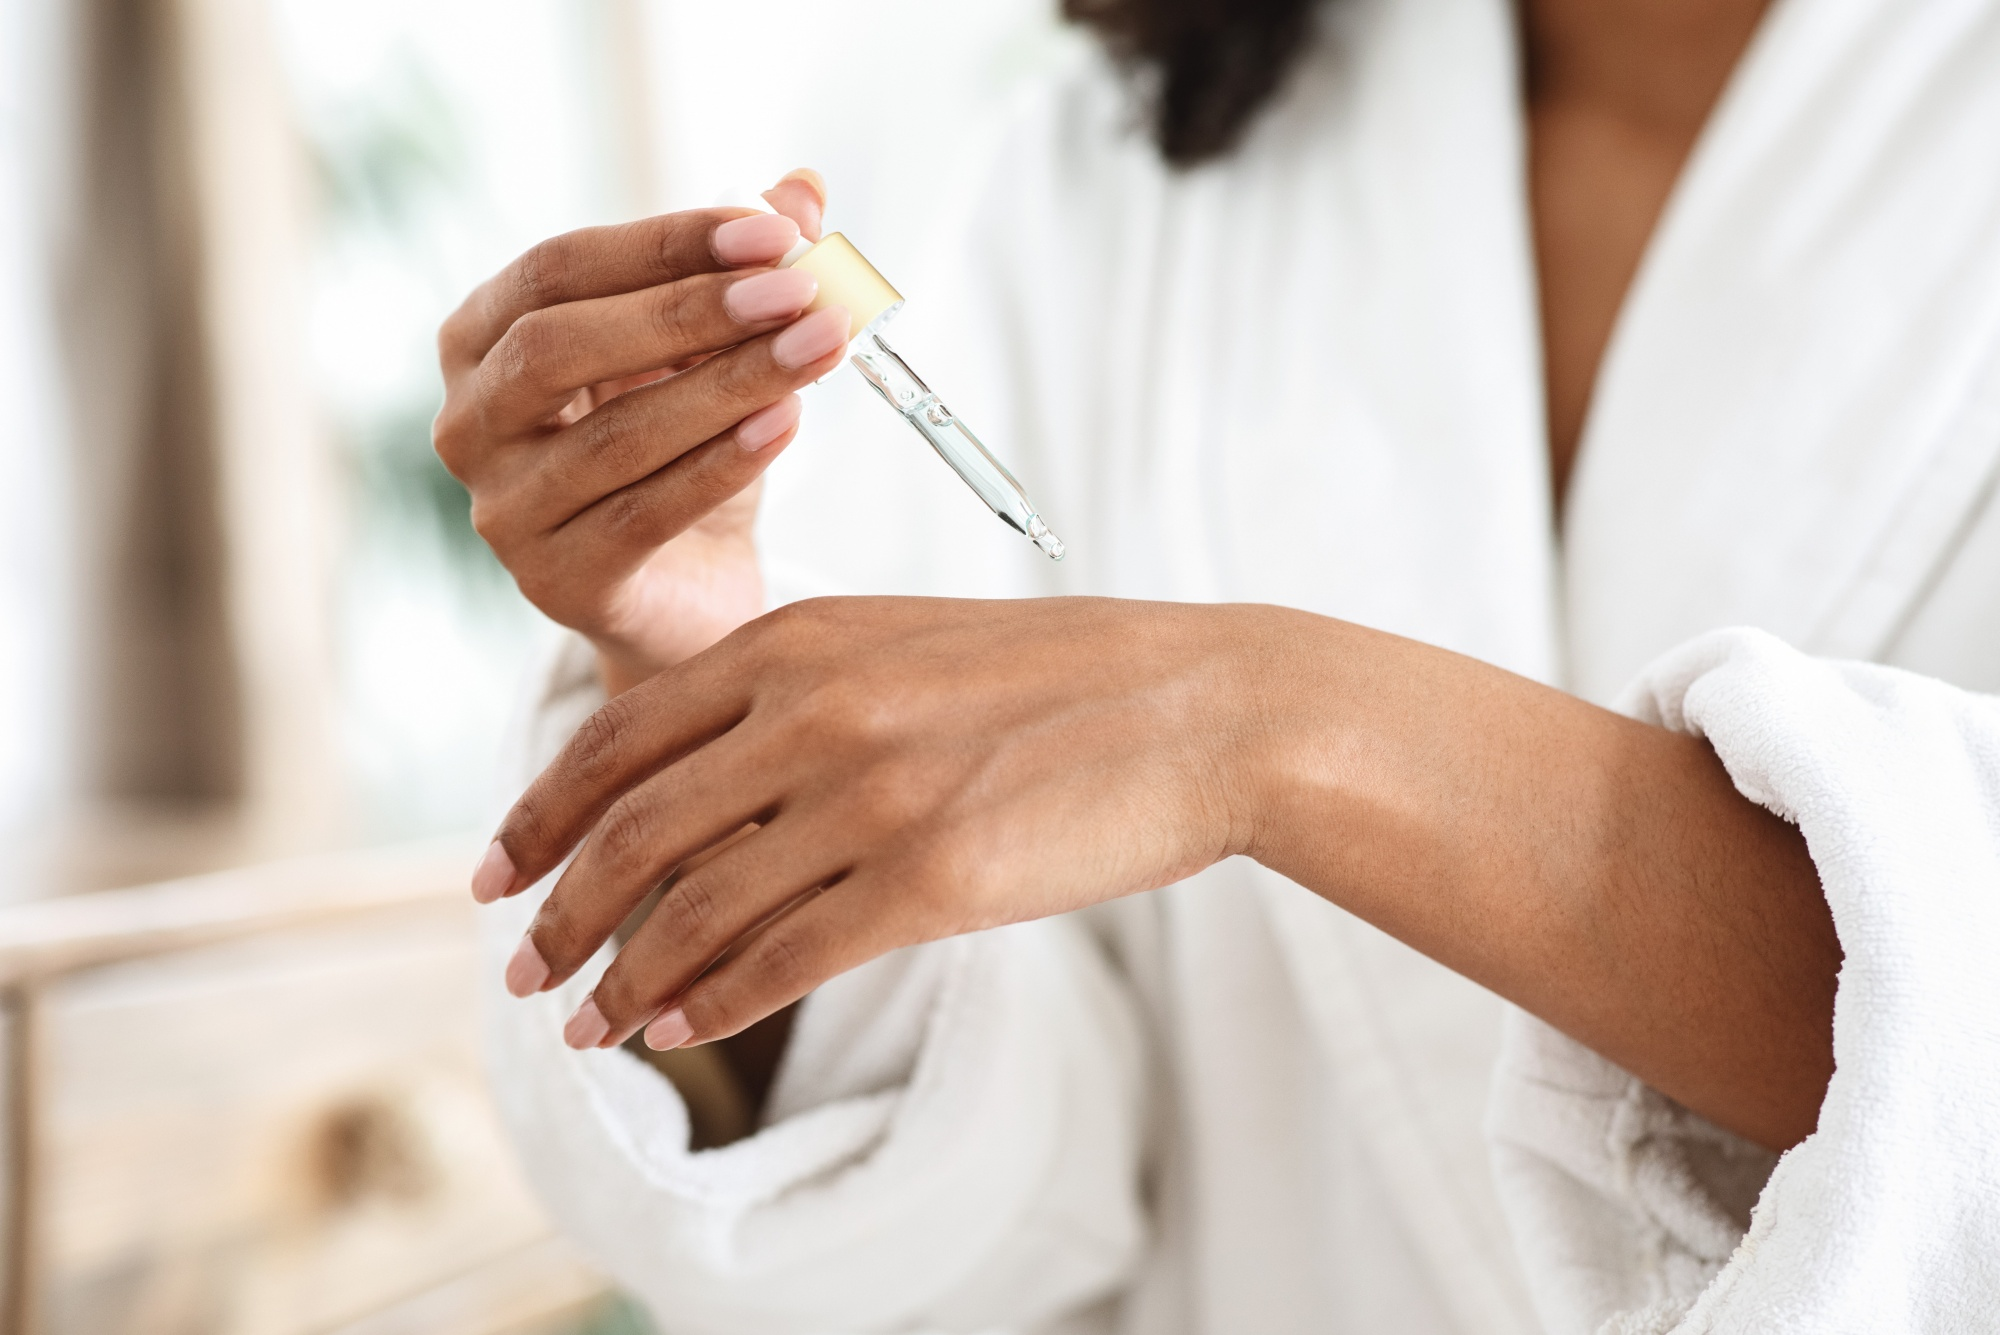 dry skin dropper in hand common beauty questions